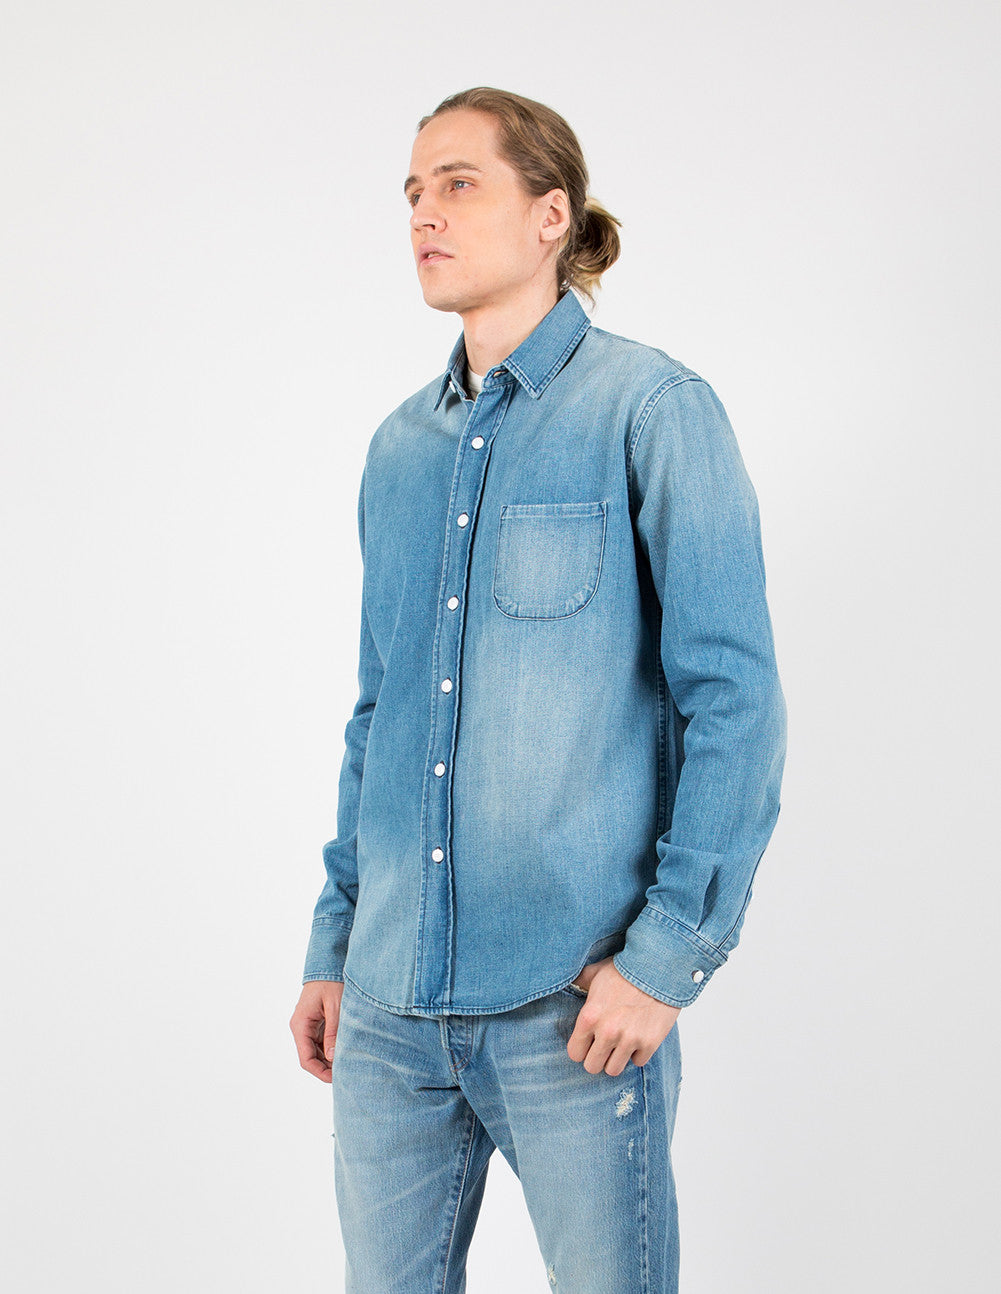 Dryden Chambray Shirt